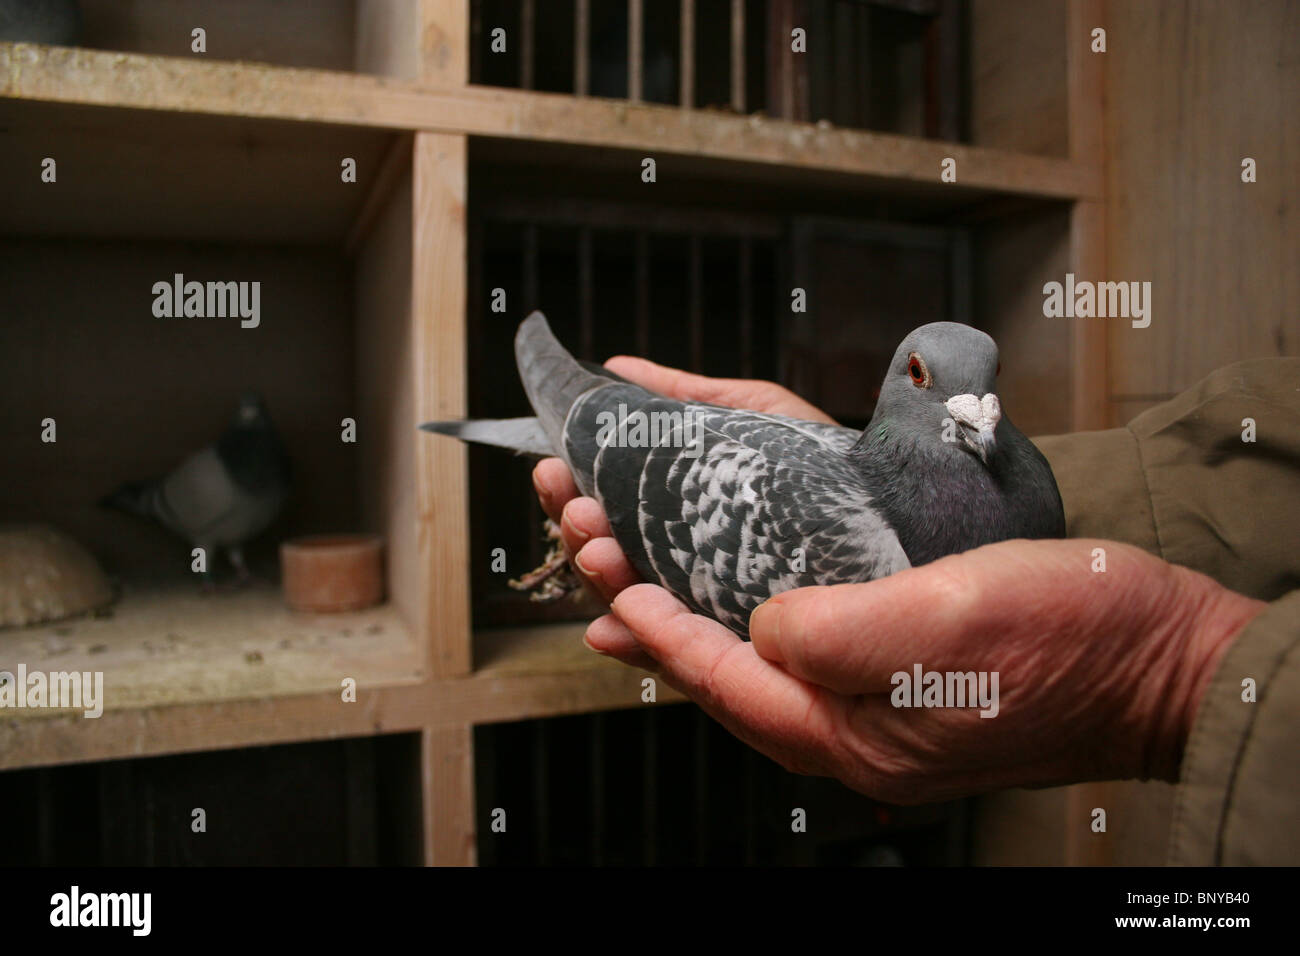 Racing pigeon being handled in loft, Rutland, UK - Stock Image